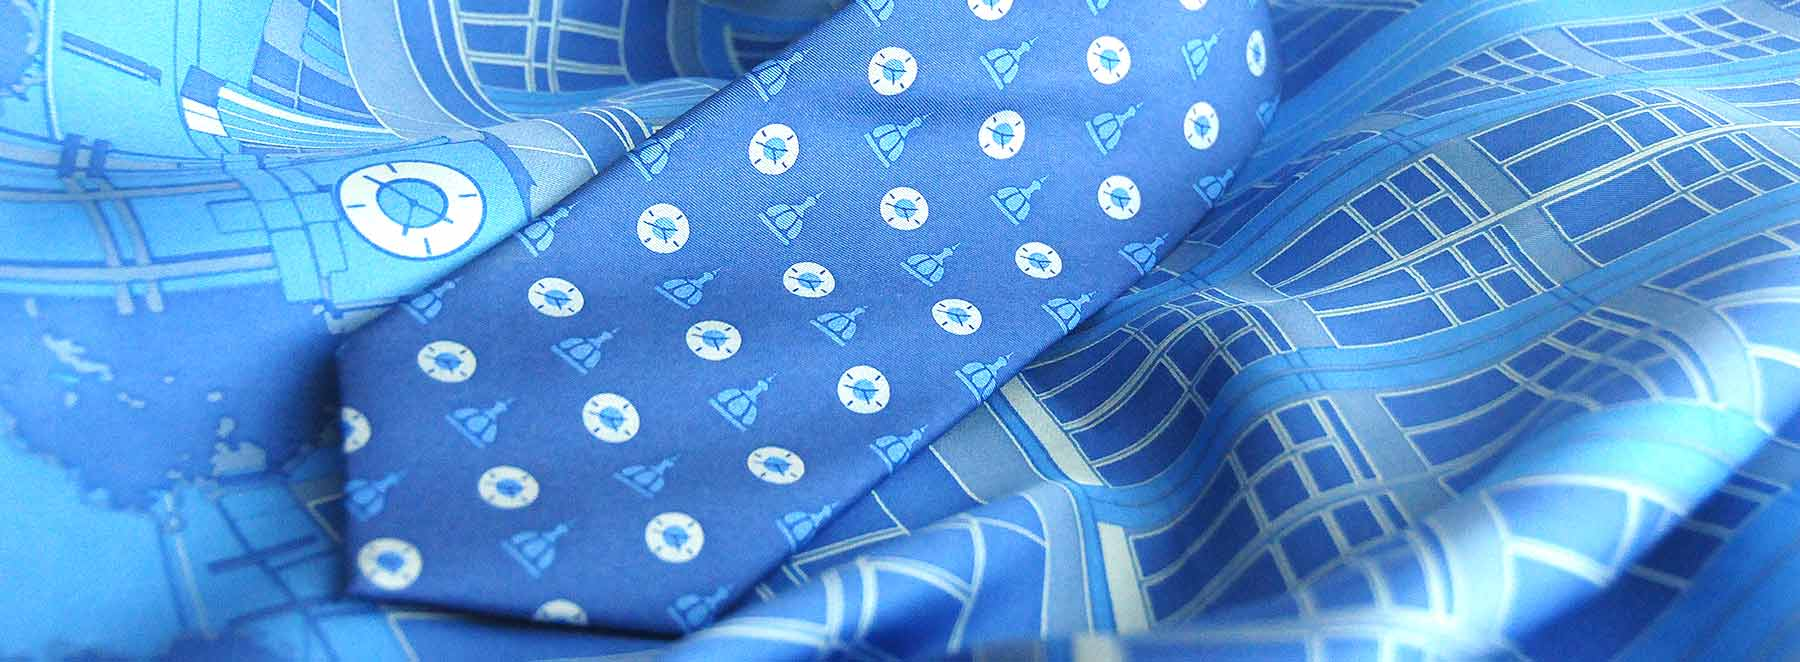 recent-customers-logos-custom-scarves-ties-bowties-pocket-squares-by-anne-touraine-usa